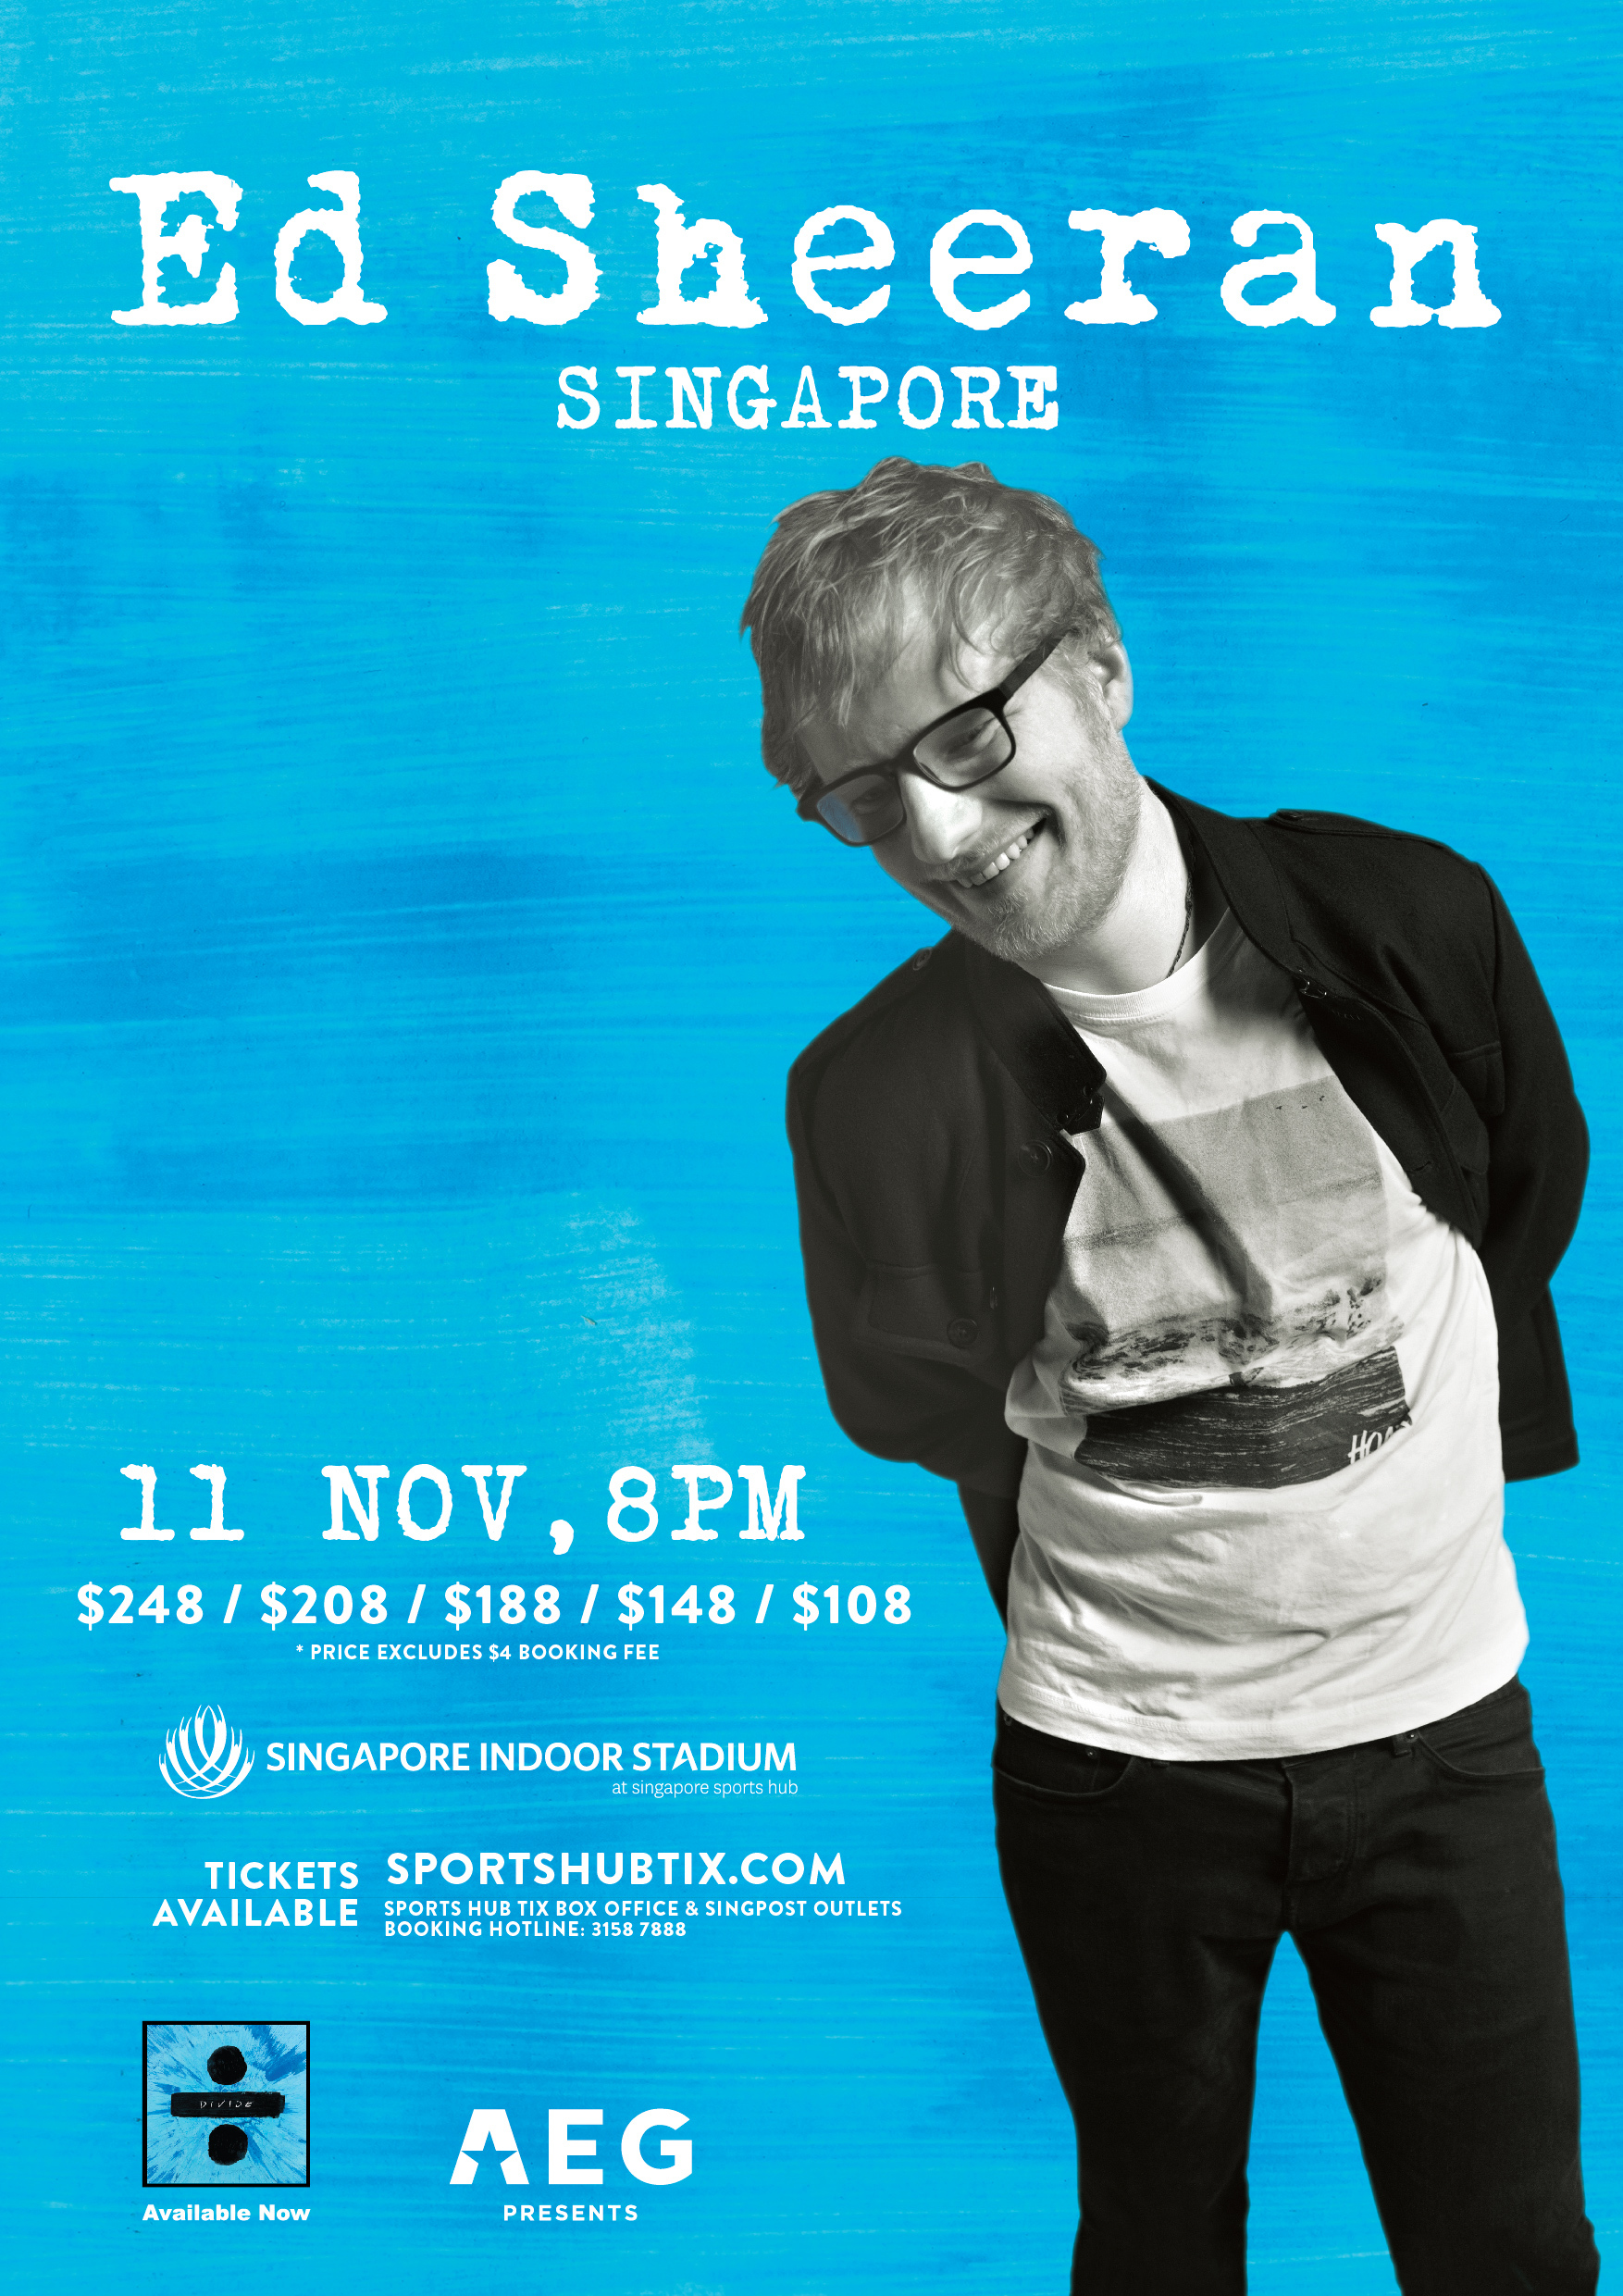 ed sheeran singapore concert 2017 singapore indoor stadium concert